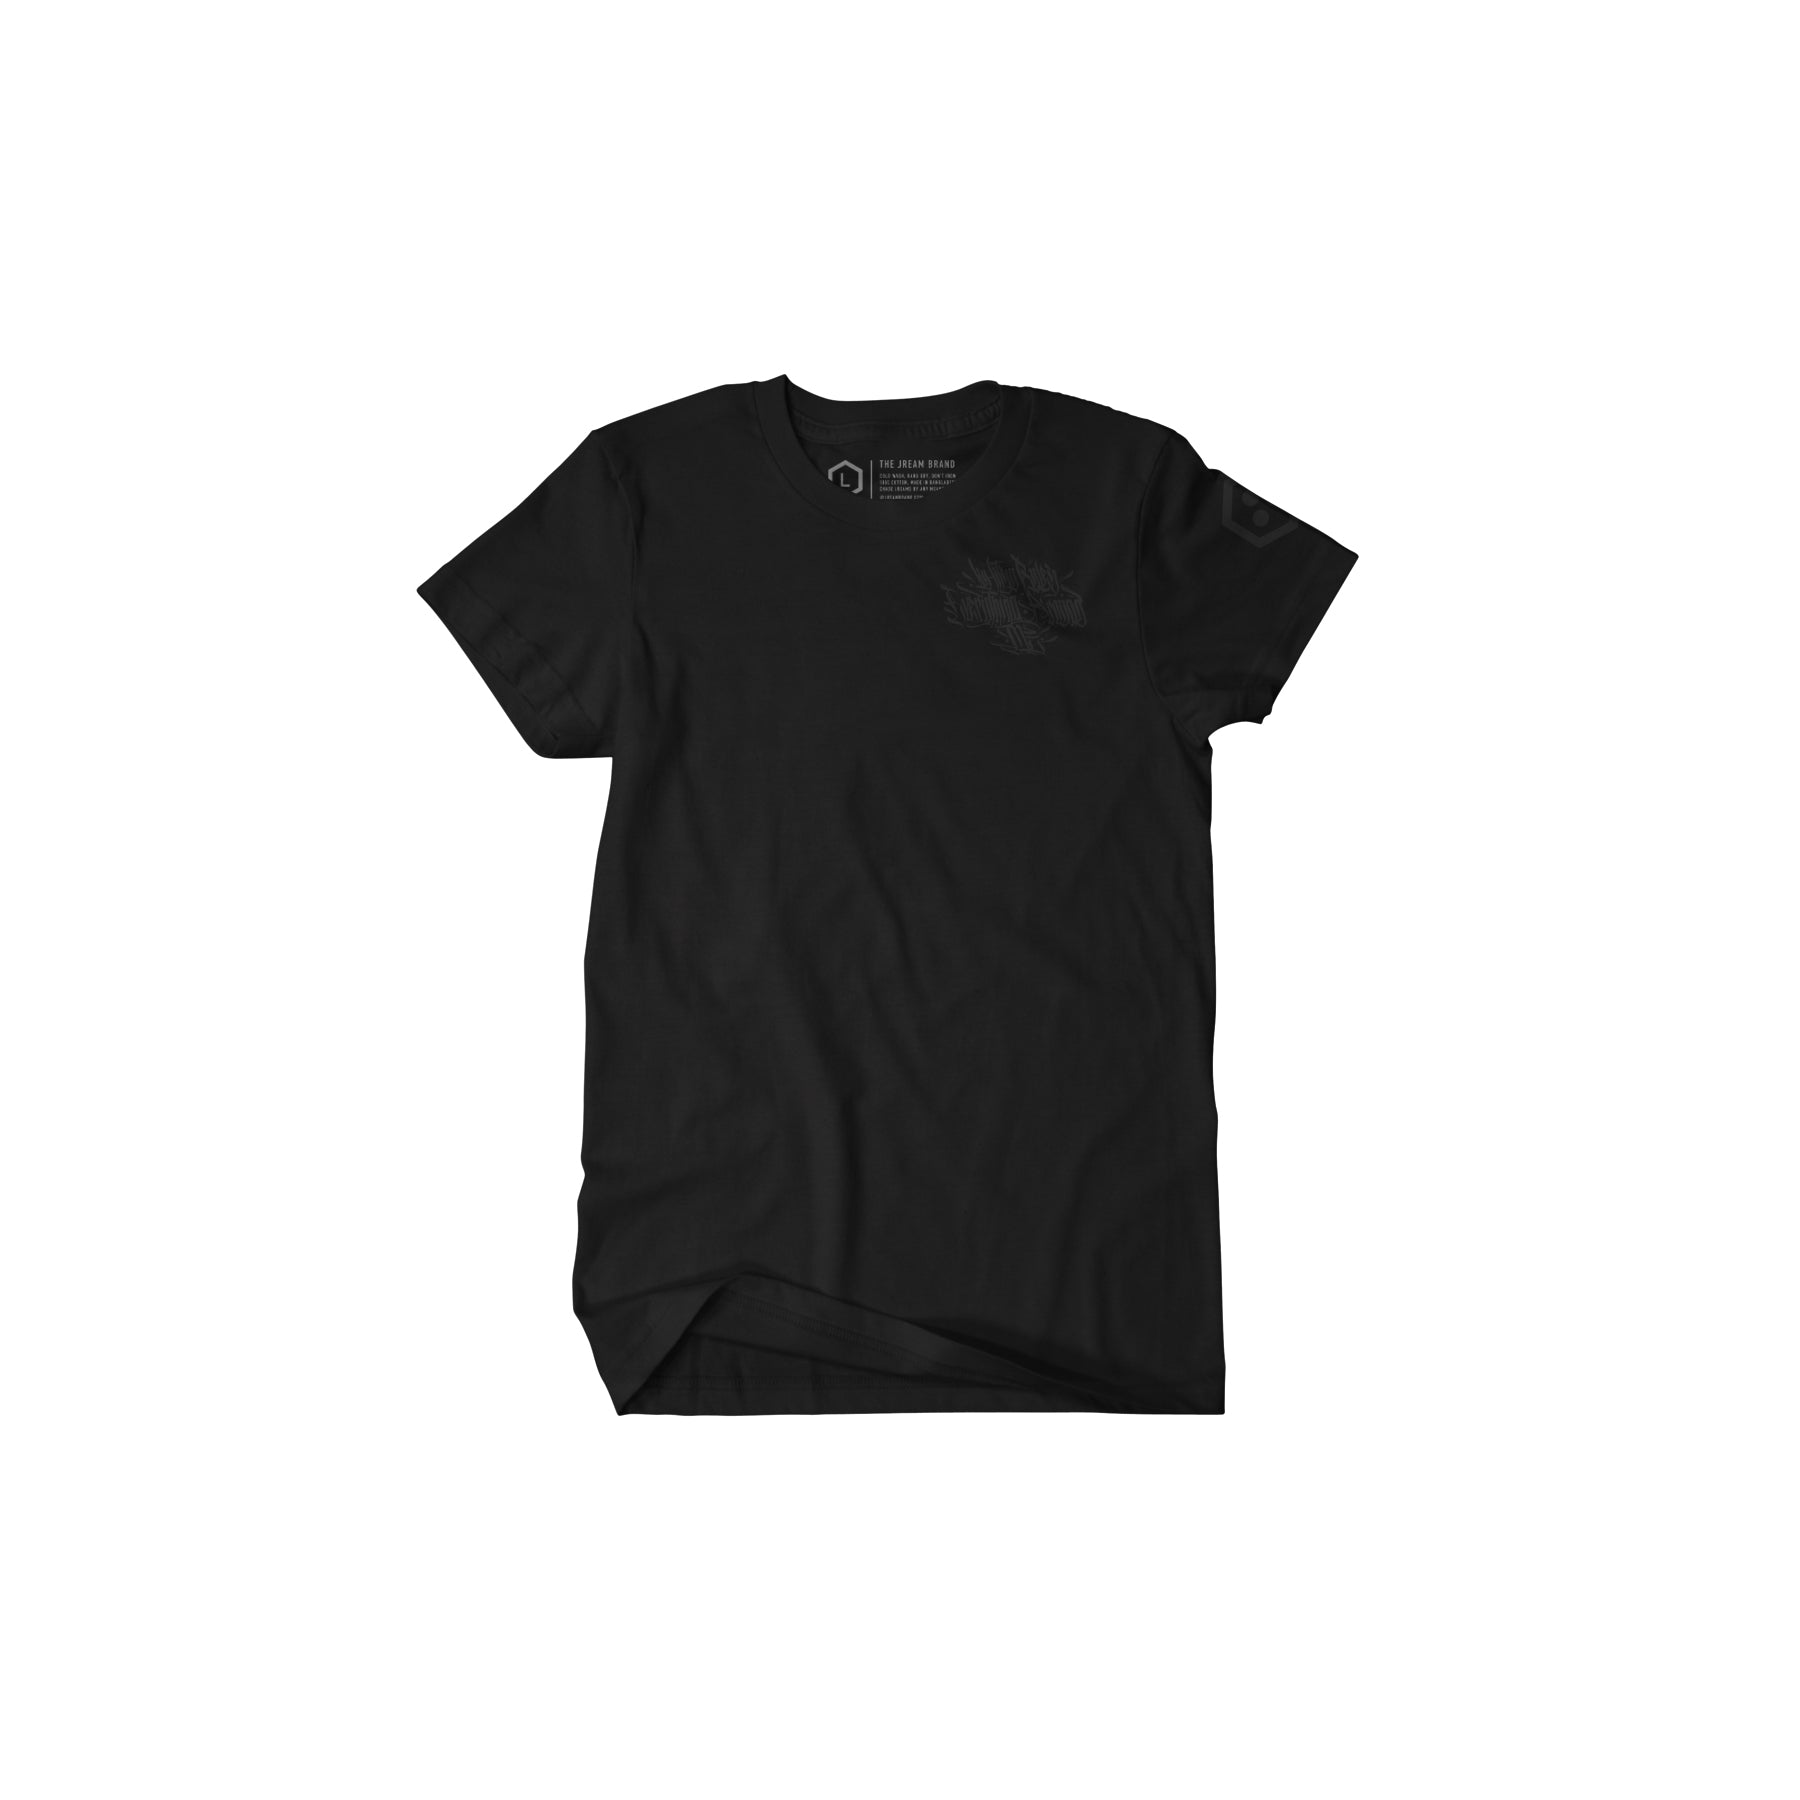 Black out J.R.E.A.M. Script Premium Tee